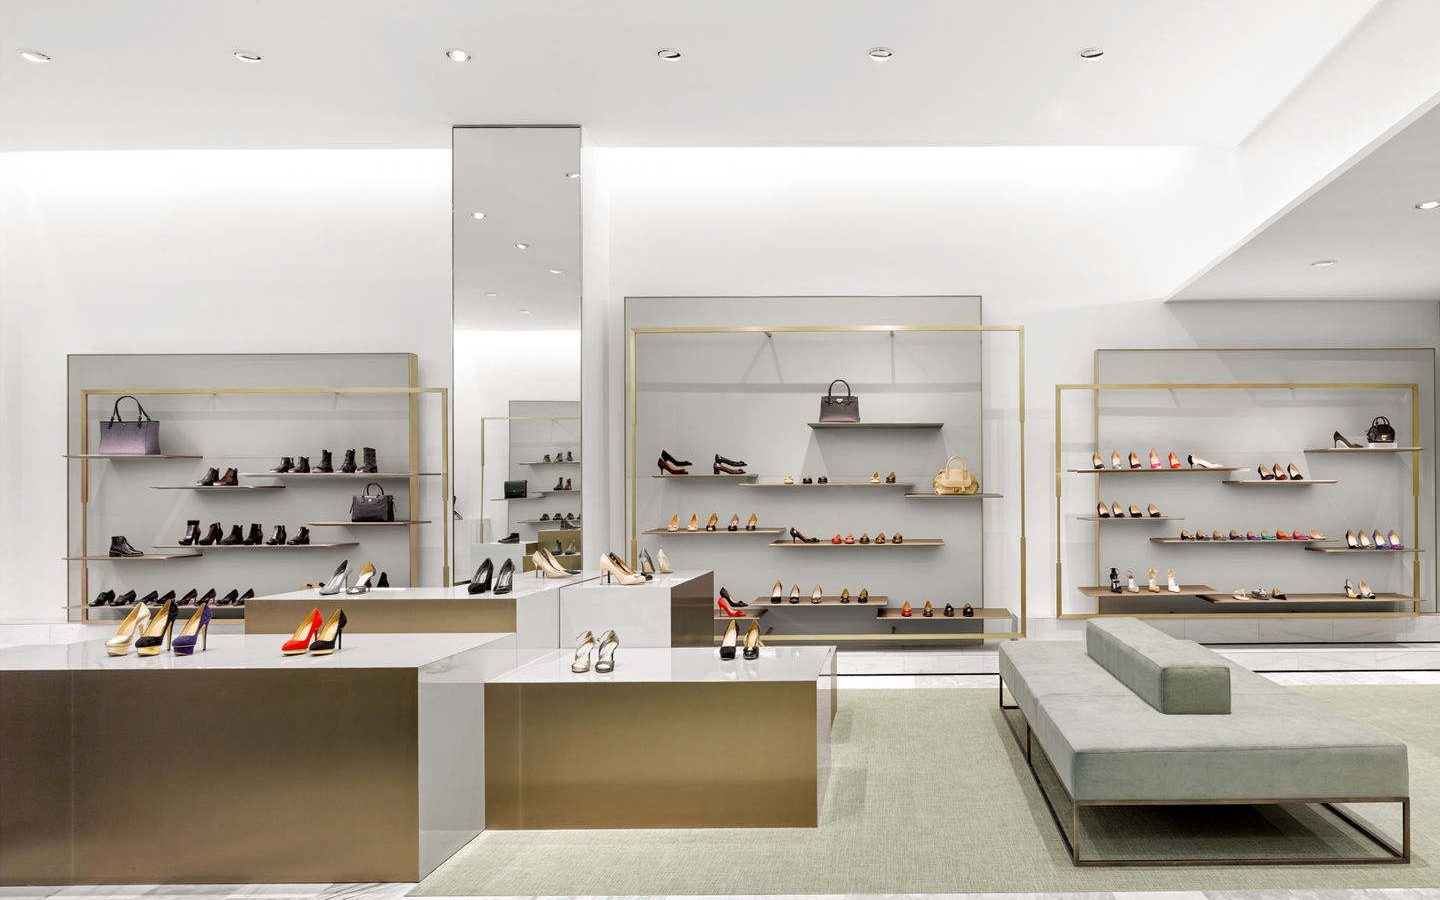 Local Ladies Footwear Display Showroom Design - Boutique Store ...